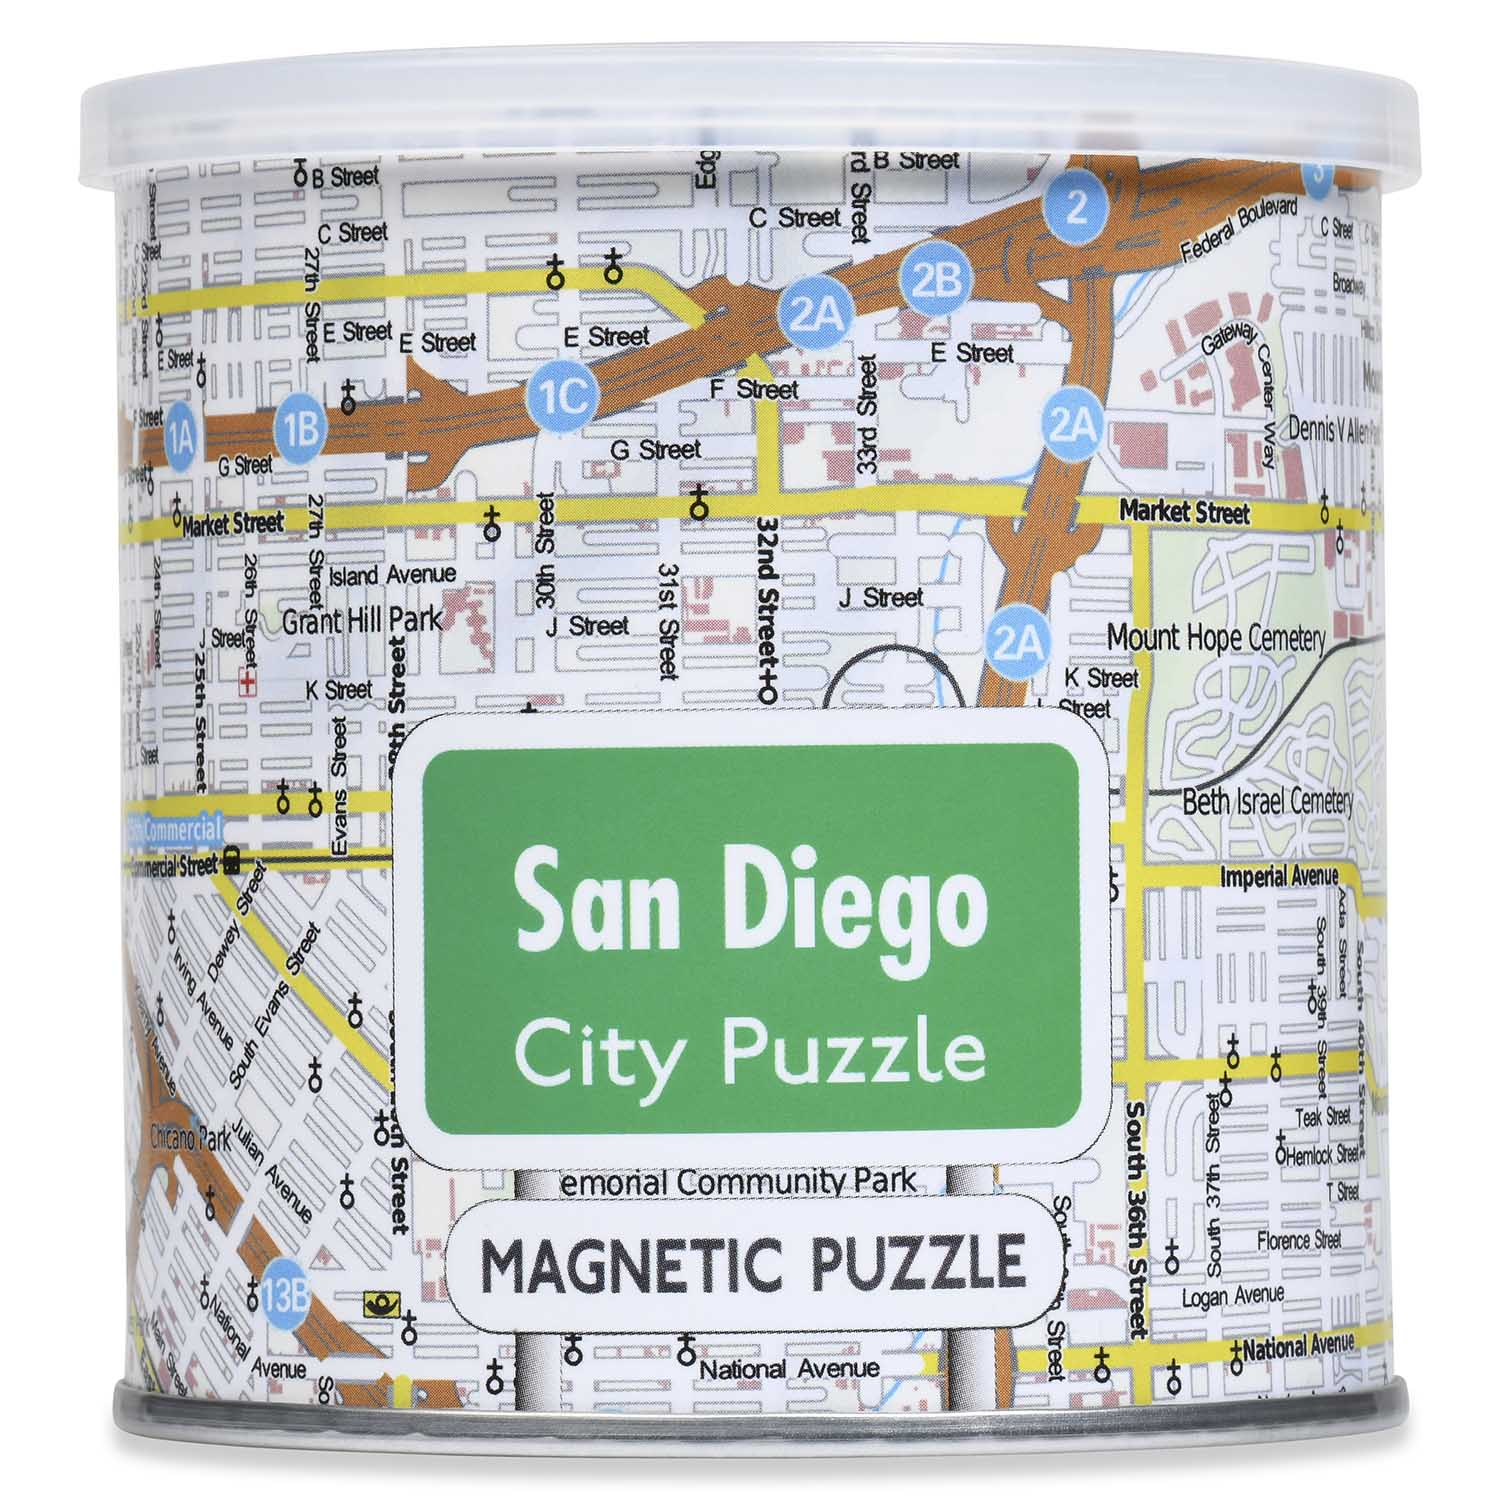 City Magnetic Puzzle San Diego Cities Jigsaw Puzzle